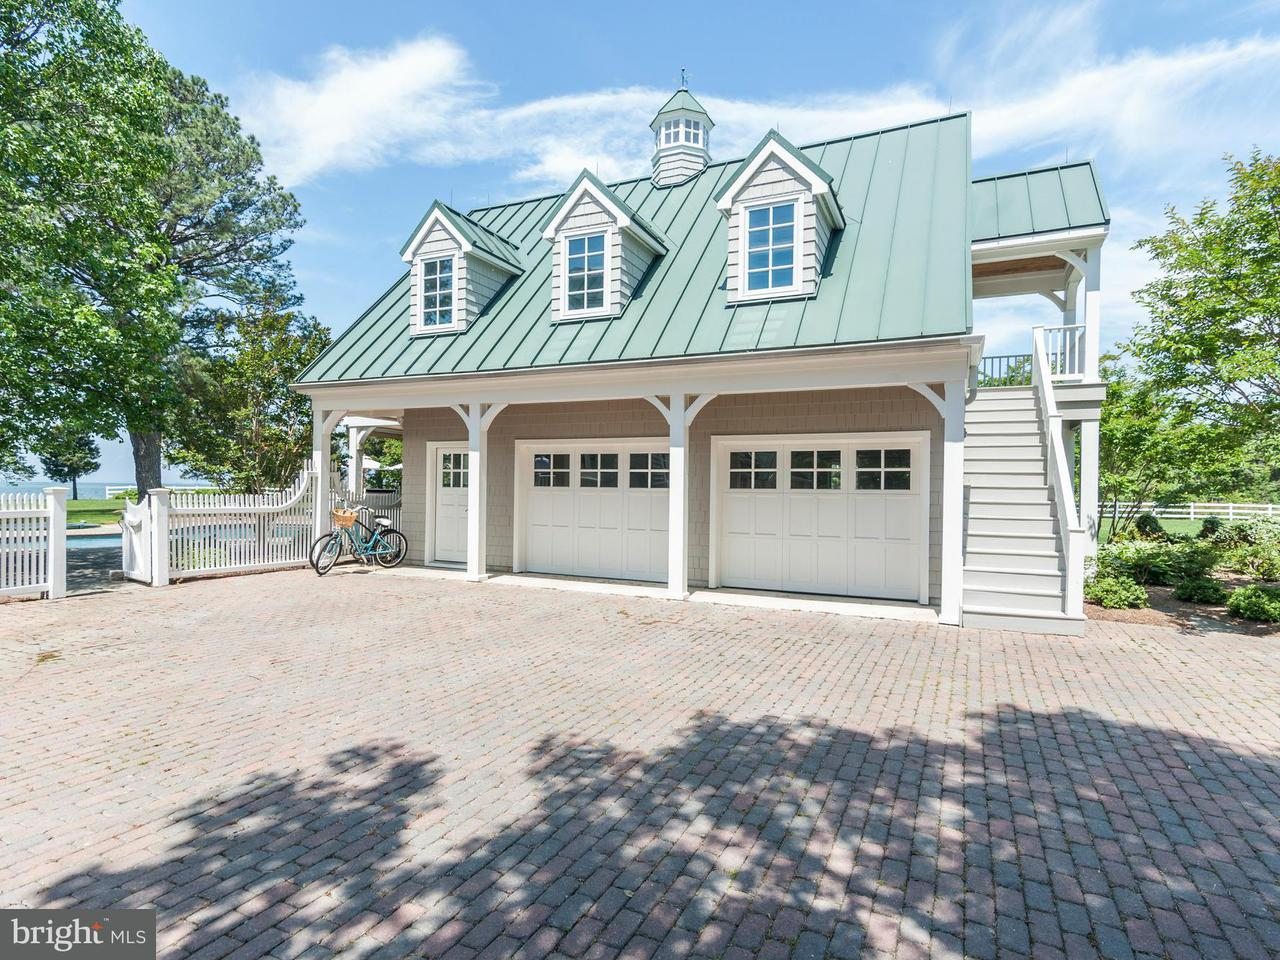 Additional photo for property listing at 4784 Ferry Neck Road 4784 Ferry Neck Road Royal Oak, メリーランド 21662 アメリカ合衆国